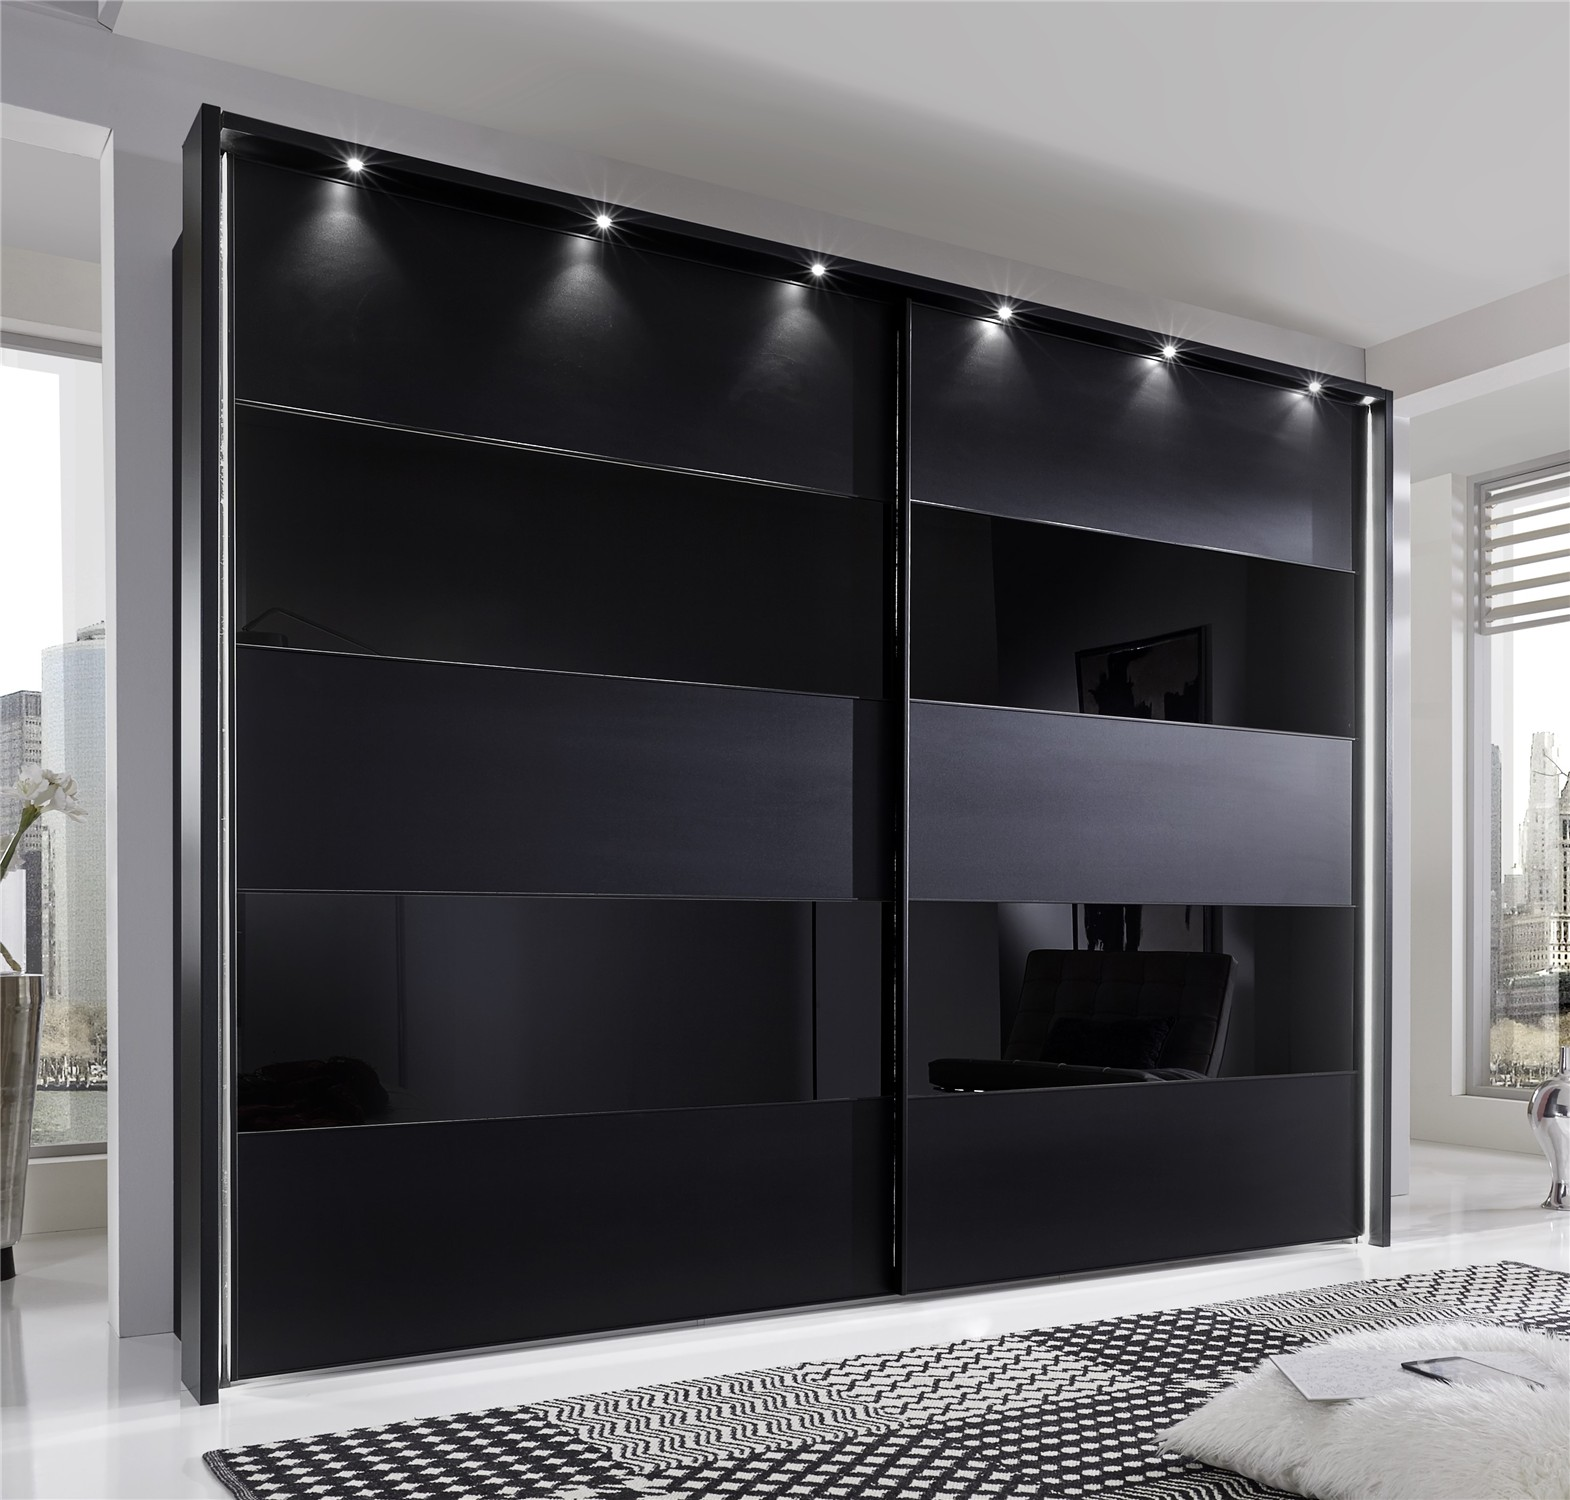 Phoebe By Stylform Black Matt Amp Glass Wardrobe Head2bed Uk